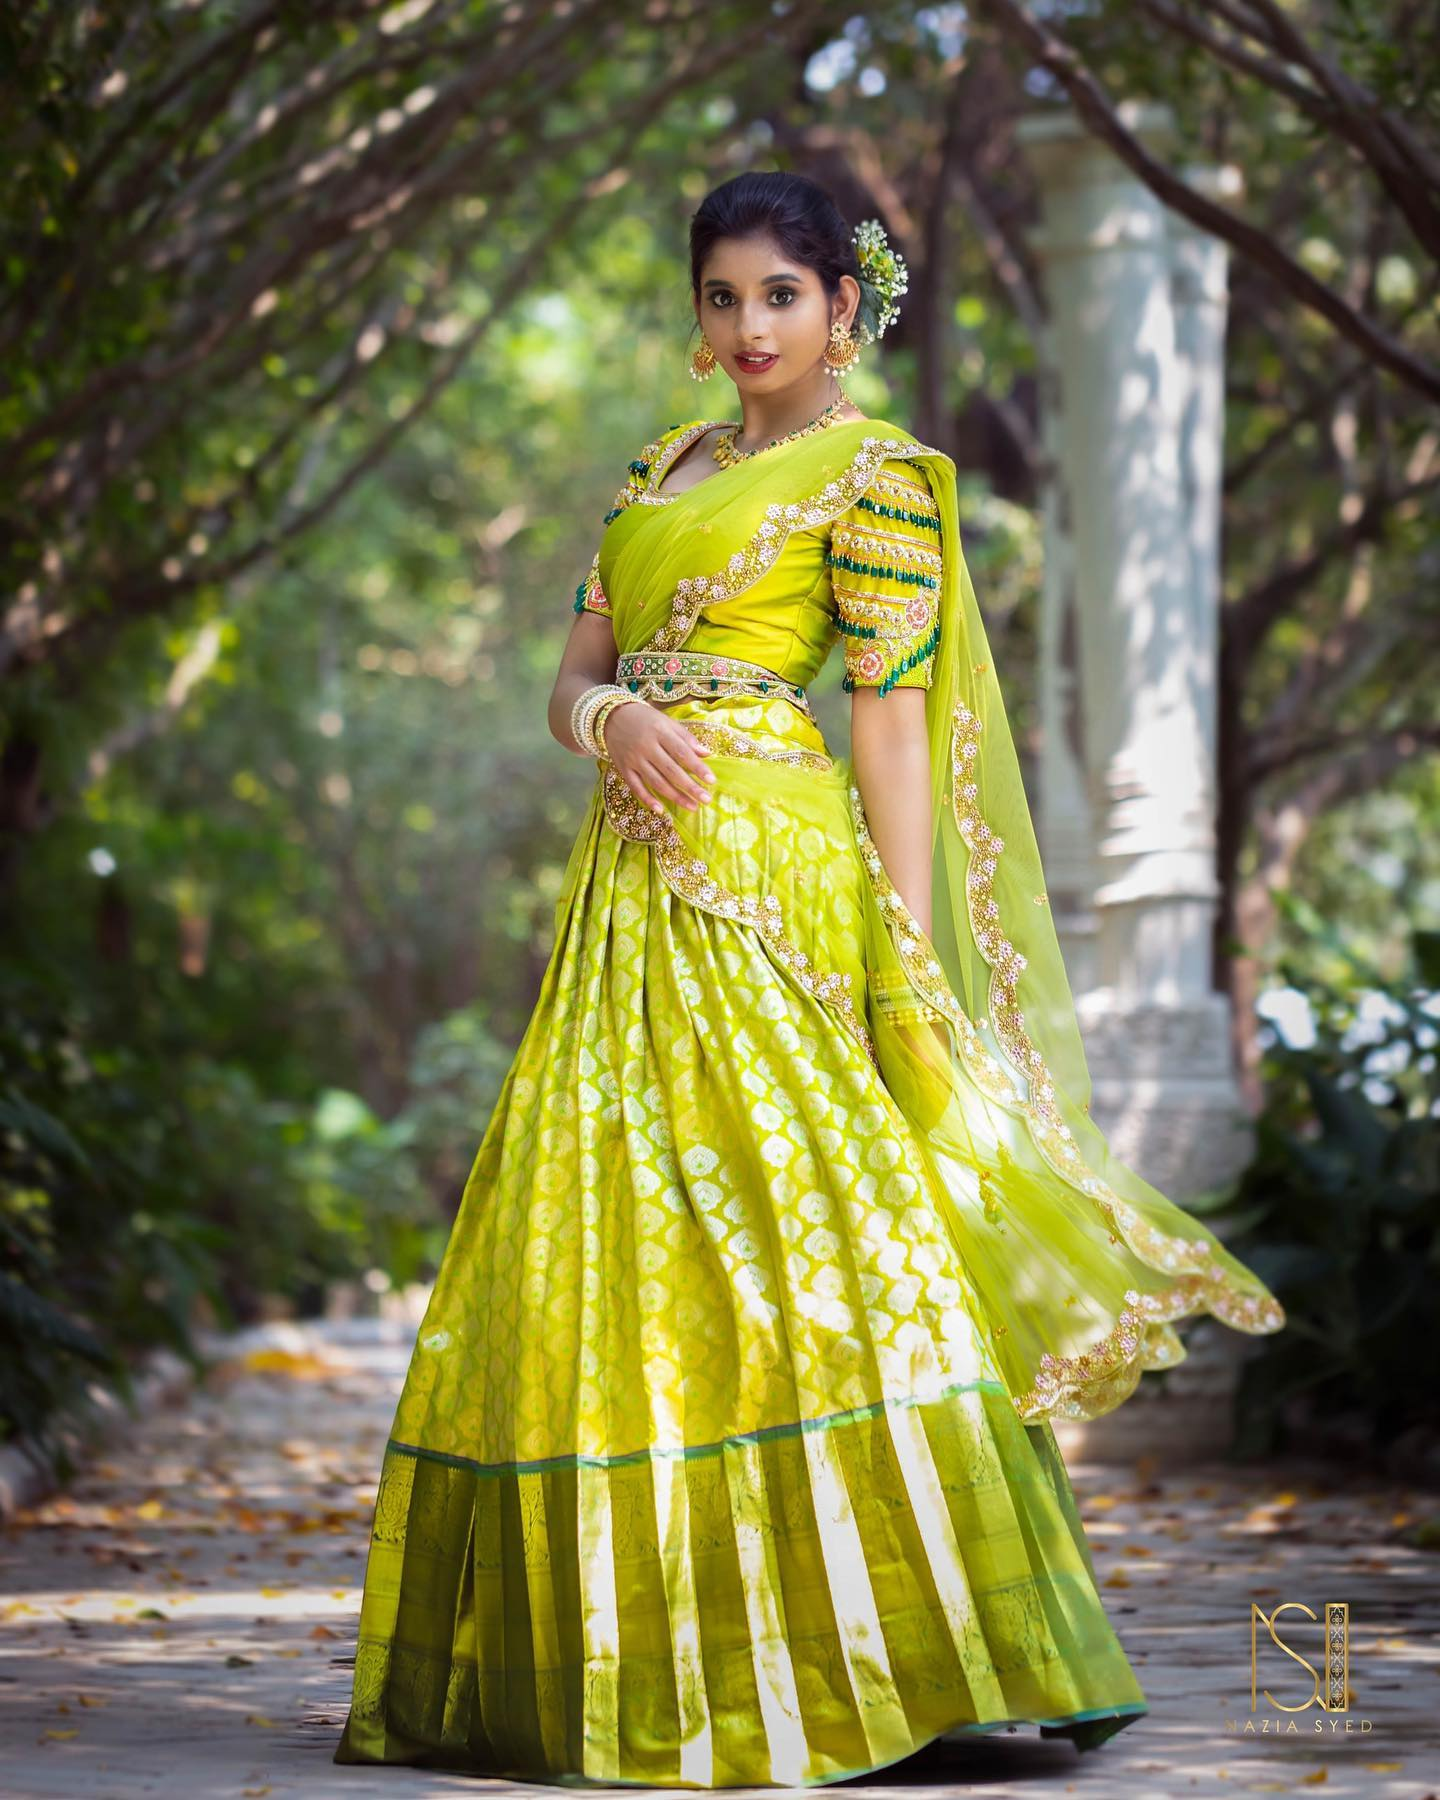 Stunning parrot green color pattu lehenga and blouse with net dupattta. Blouse with hand embroidery bead work.  2021-07-12